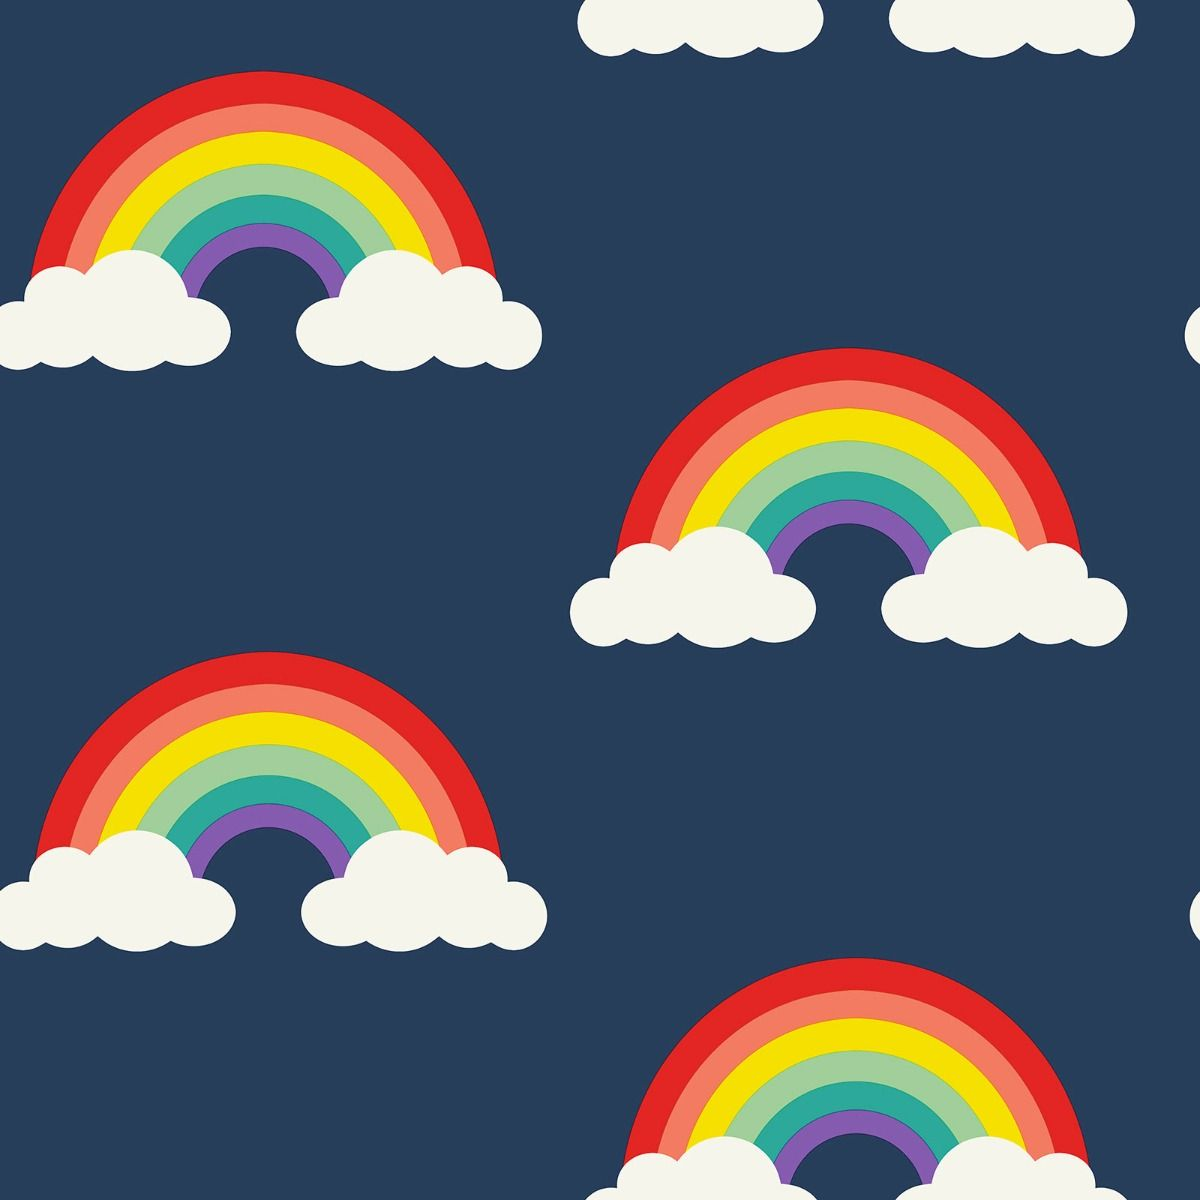 nhs rainbow covid wallpaper navy blue